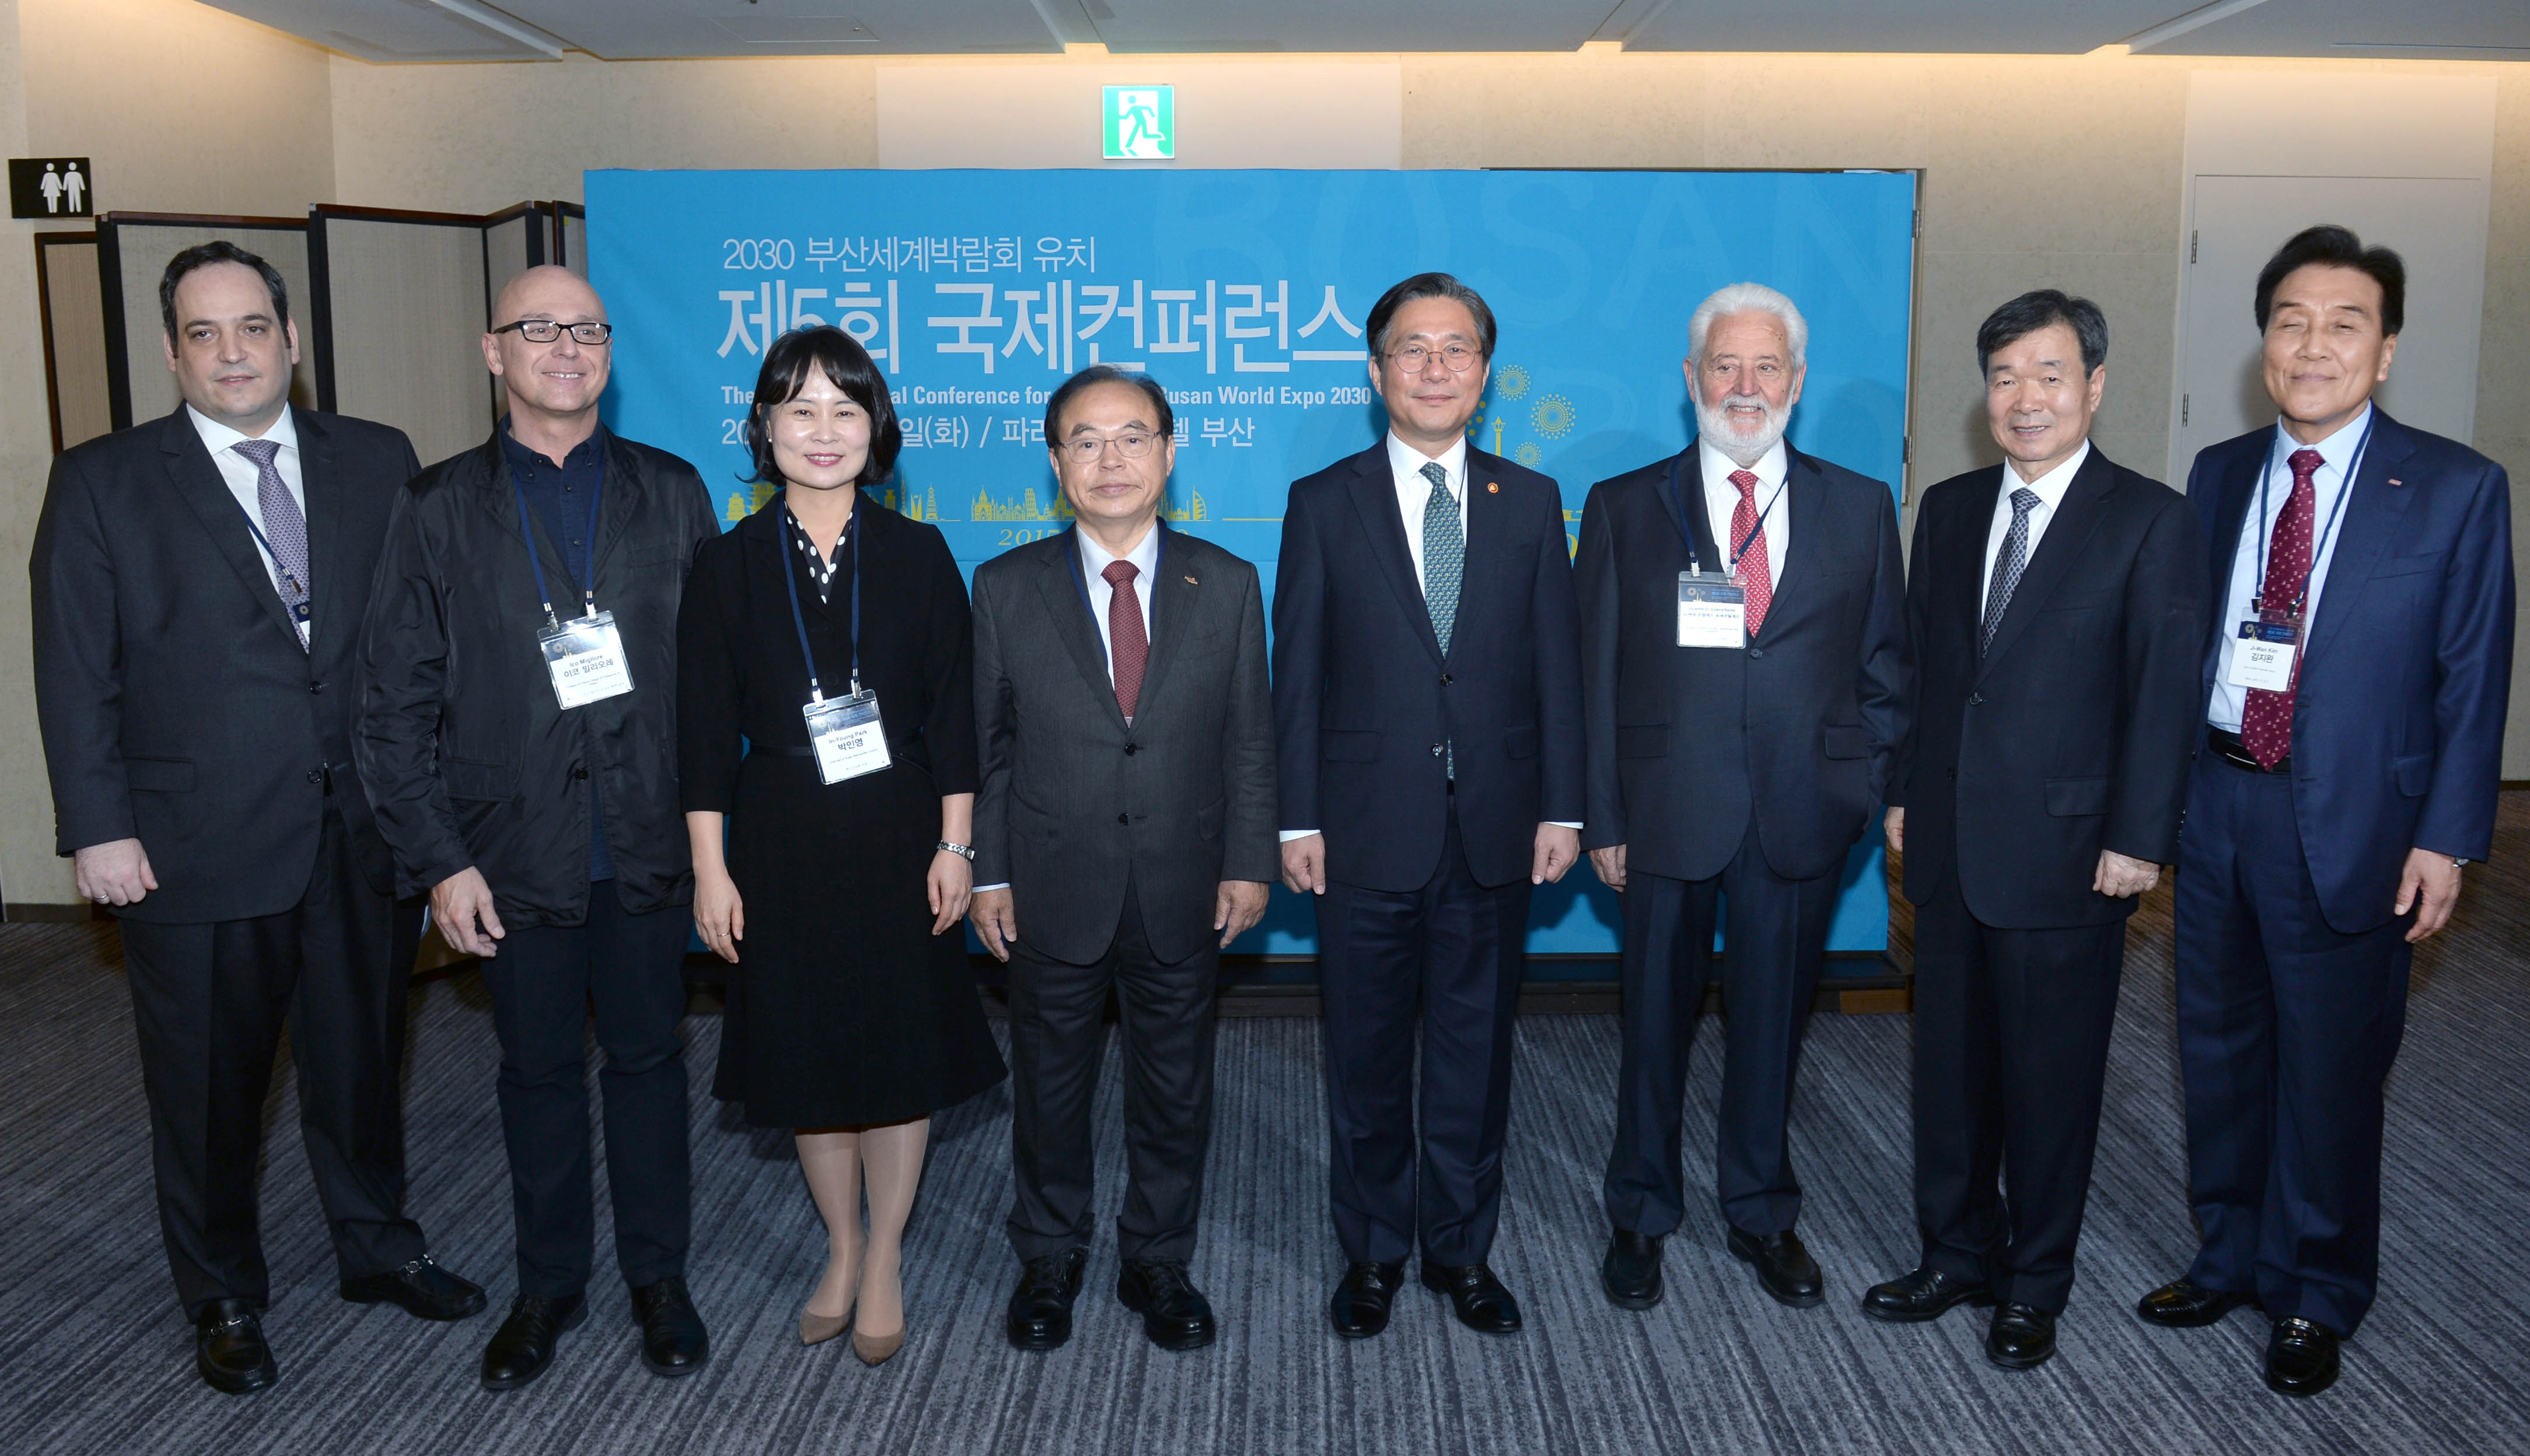 Minister Sung delivers speech at conference for attracting Busan World Expo 2030 Image 0